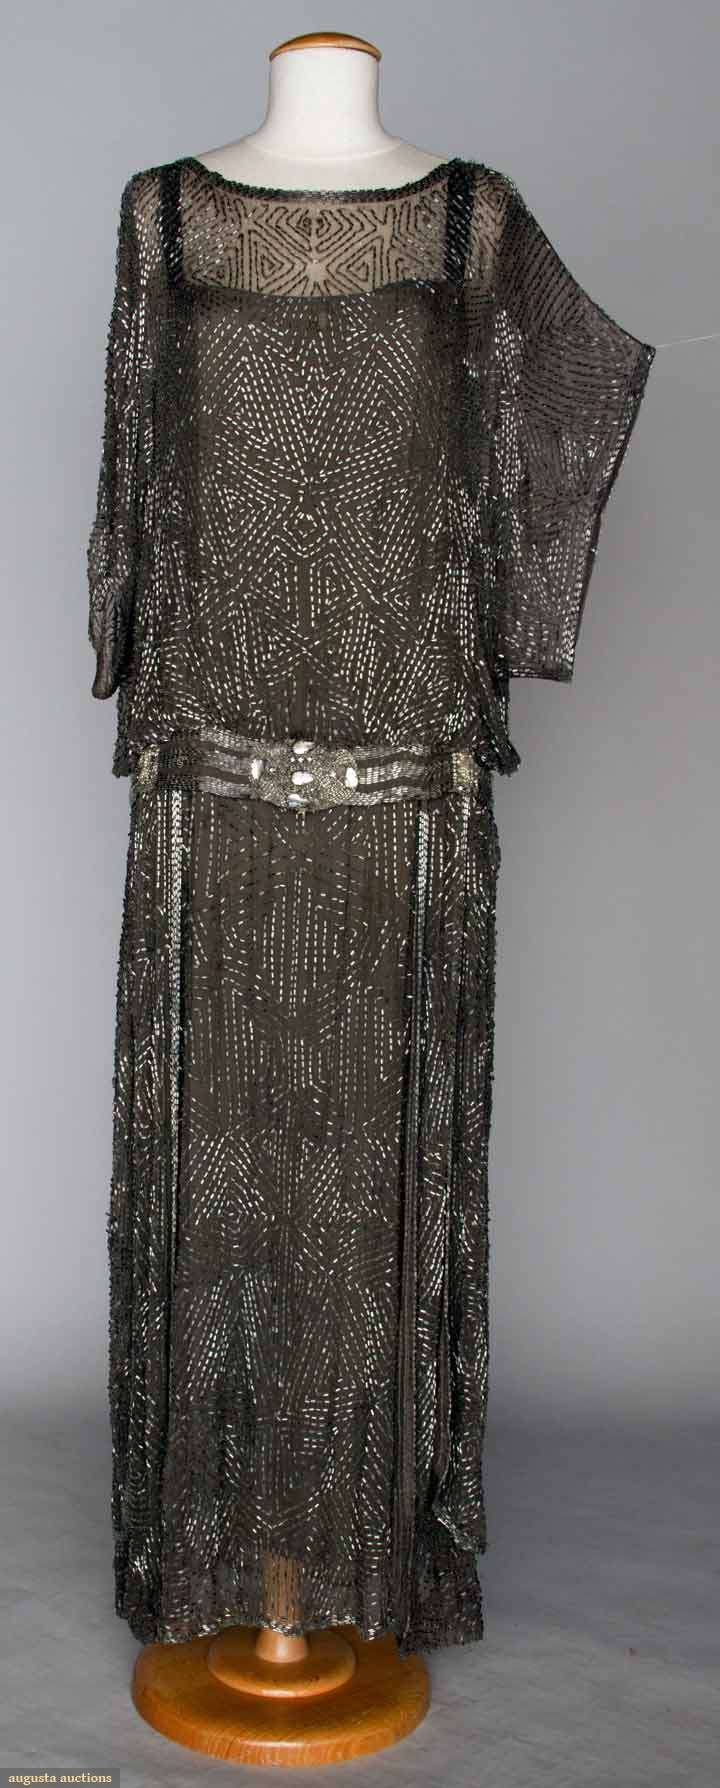 17 Best Ideas About 1920s Dress On Pinterest Beading